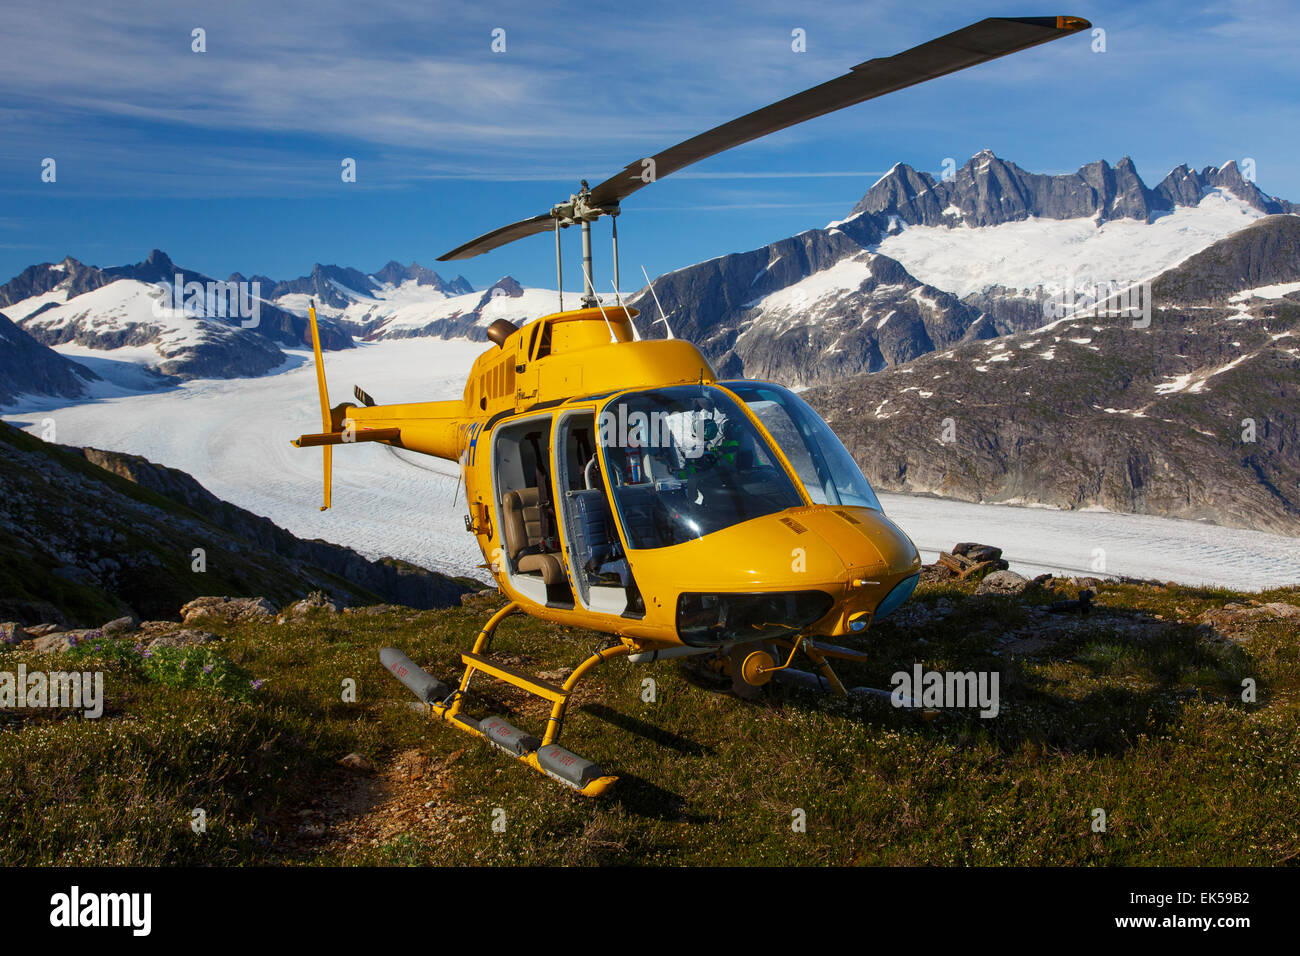 Helicopter on Mount Stroller White above the Mendenhall Glacier, Tongass National Forest, Alaska. - Stock Image